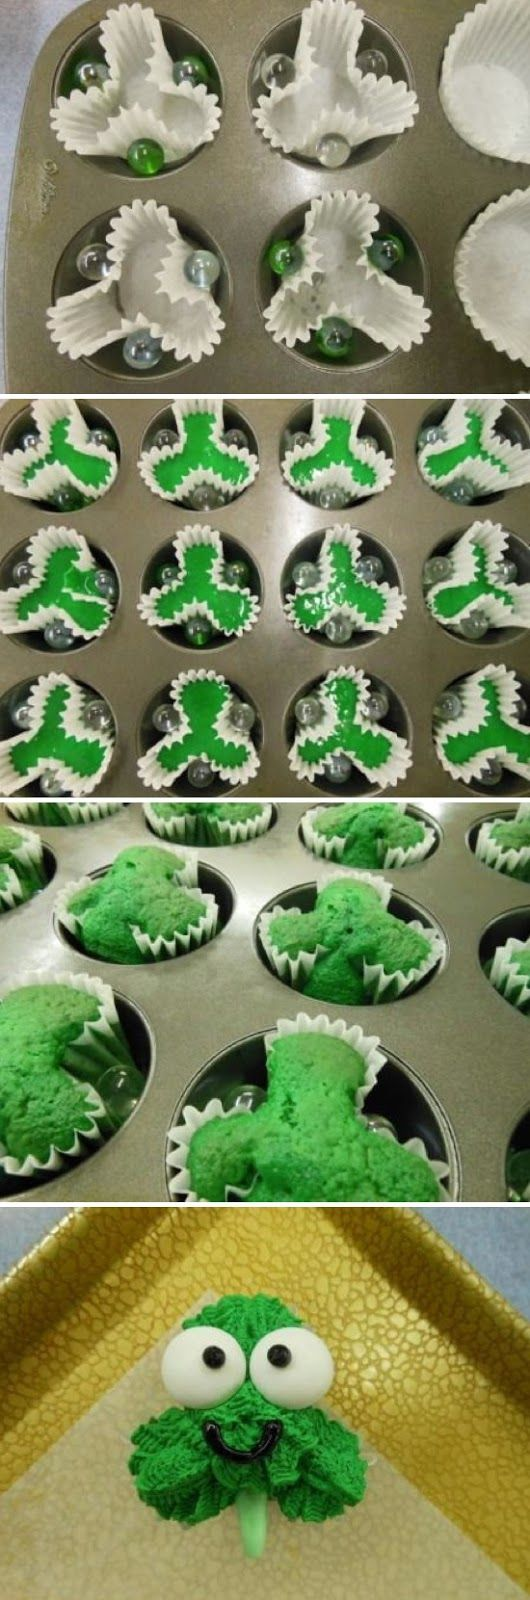 Clover cupcakes for st. Patrick's day